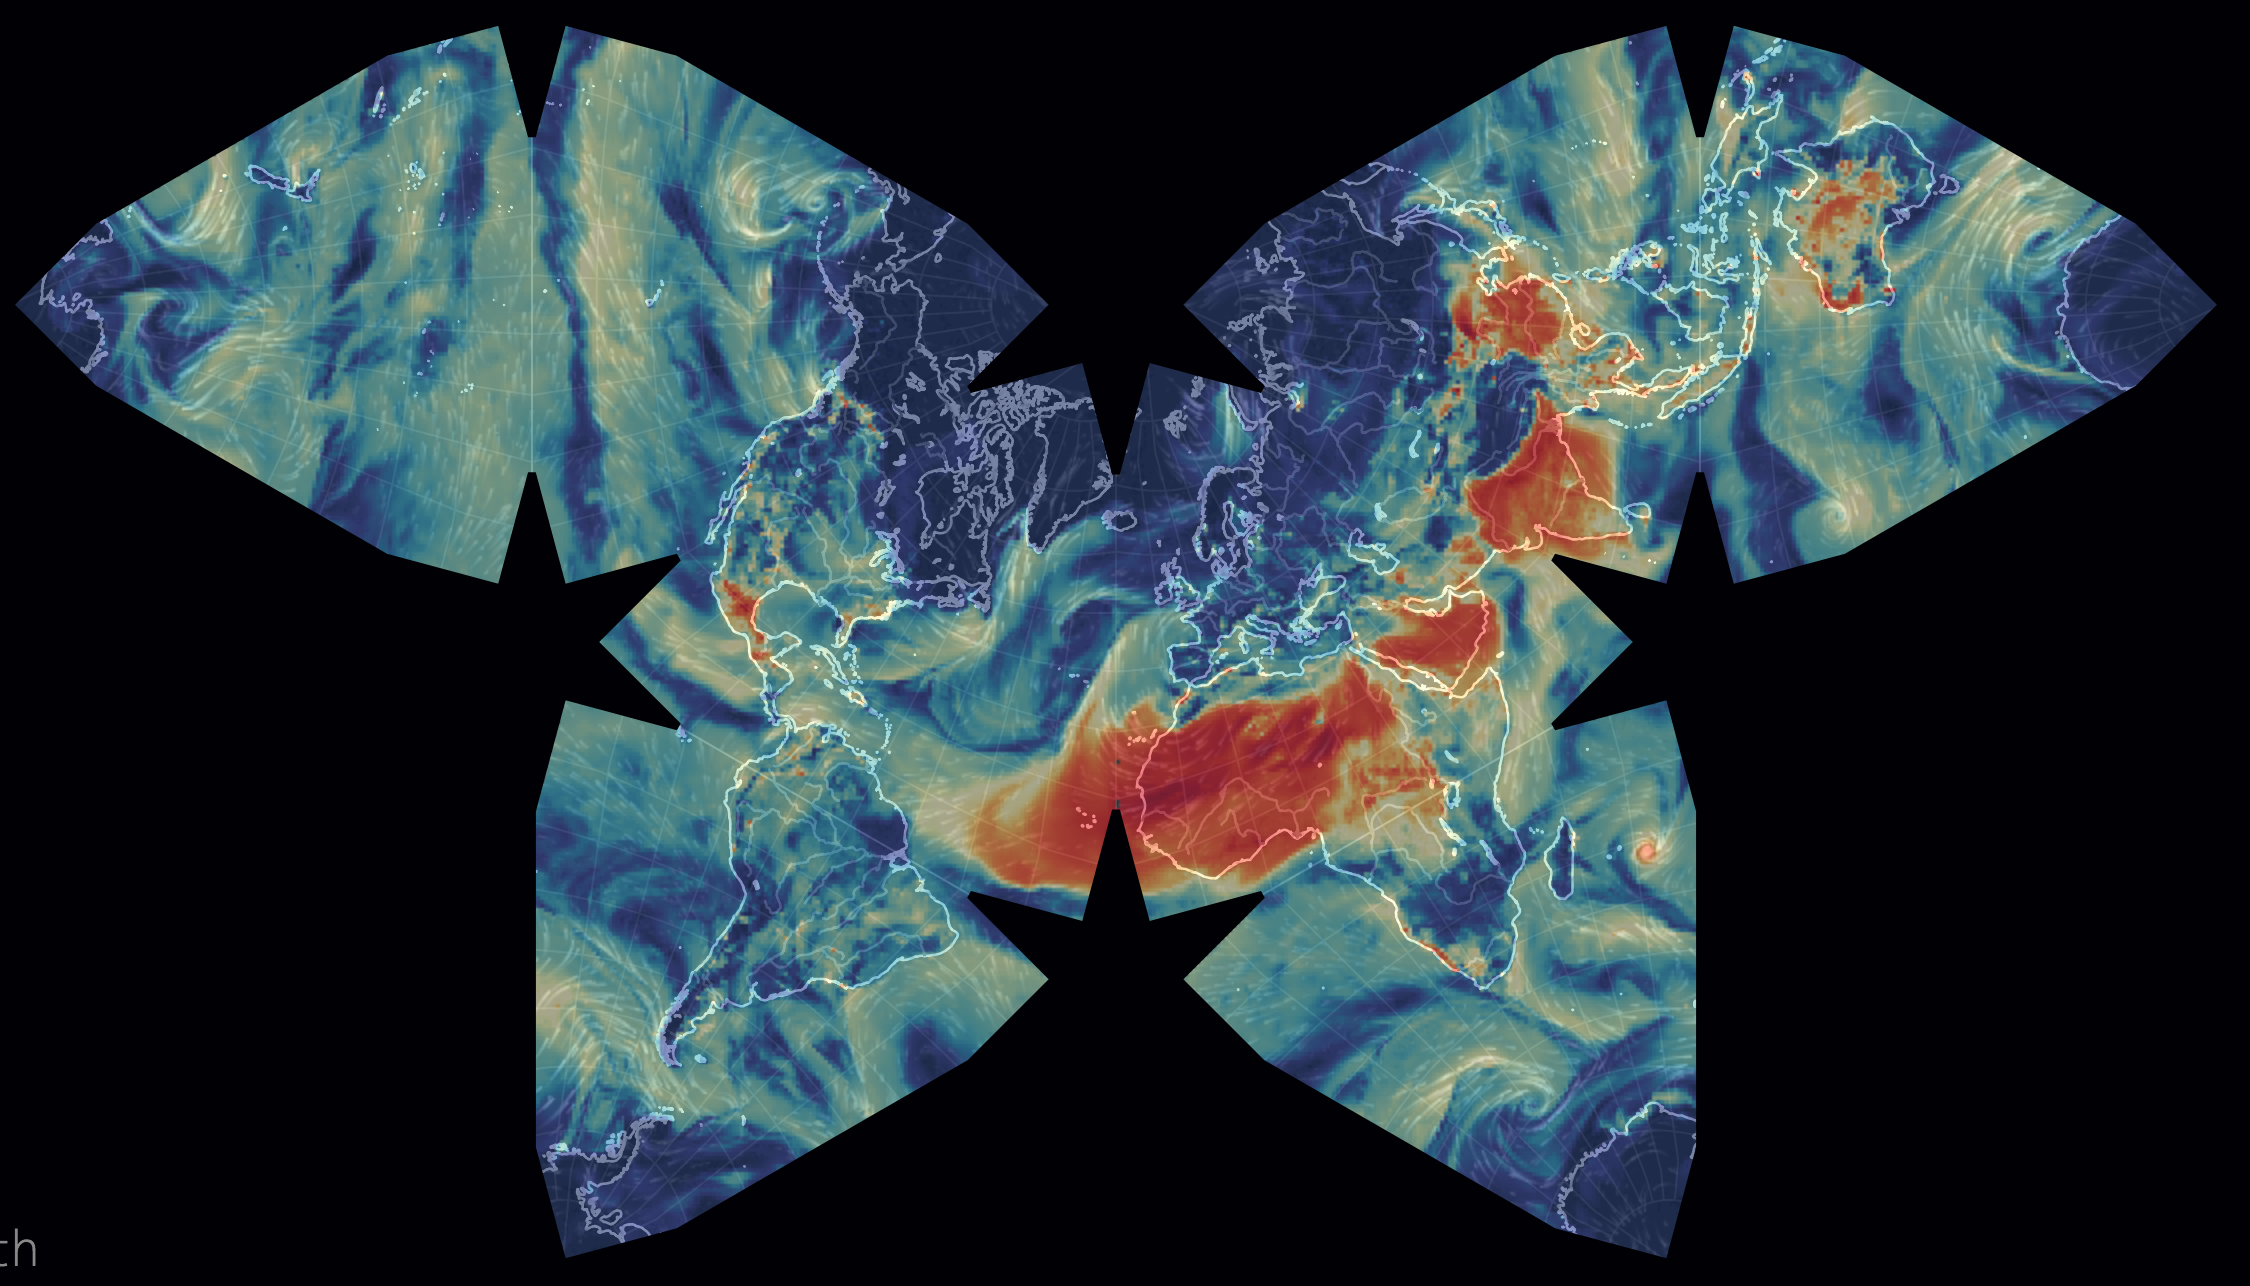 earth____a_global_map_of_wind__weather__and_ocean_conditions2